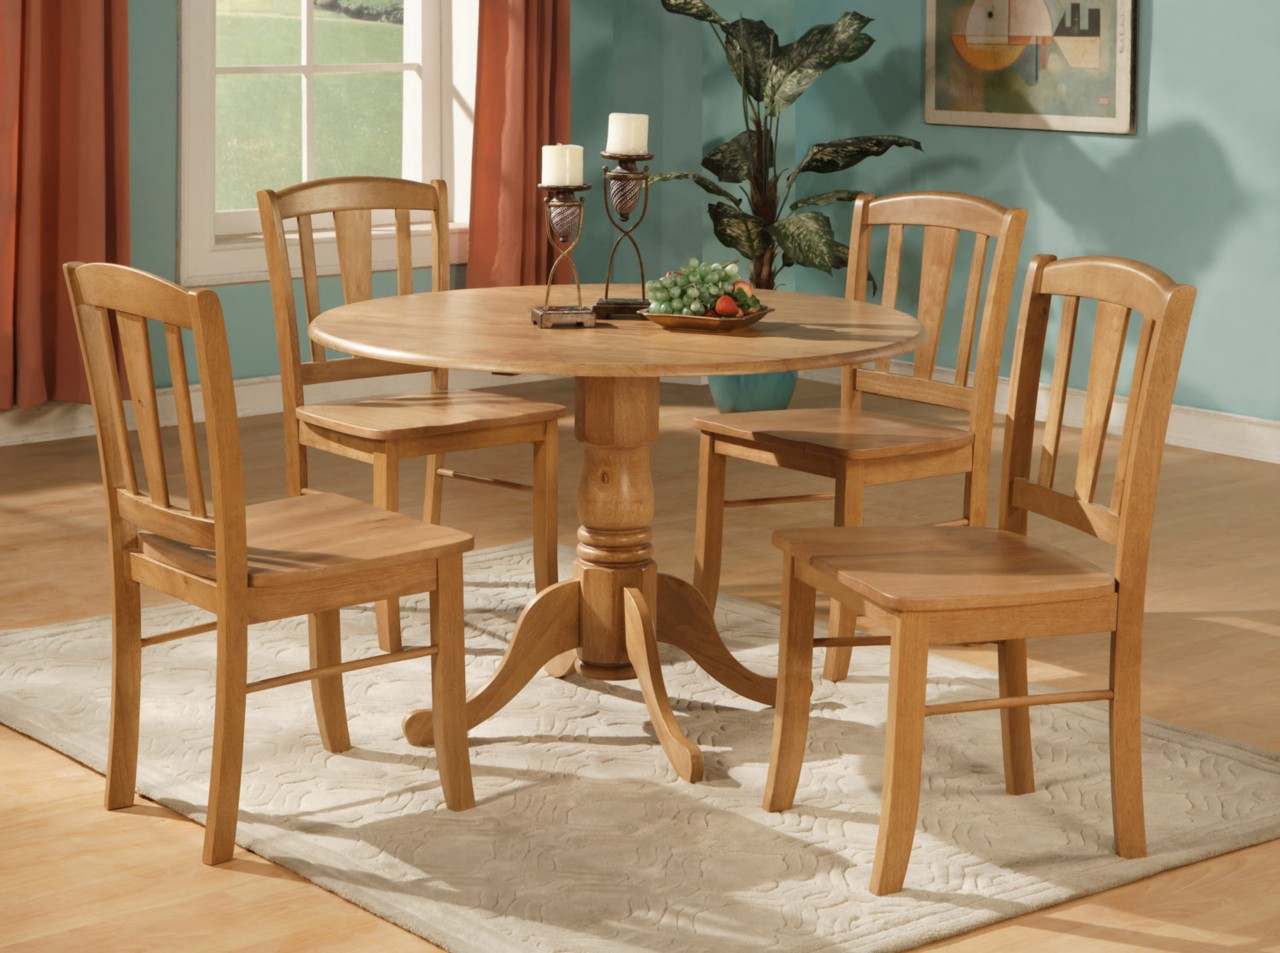 small kitchen table and chairs set chair decorating ideas 5pc round dinette dining 4 ebay